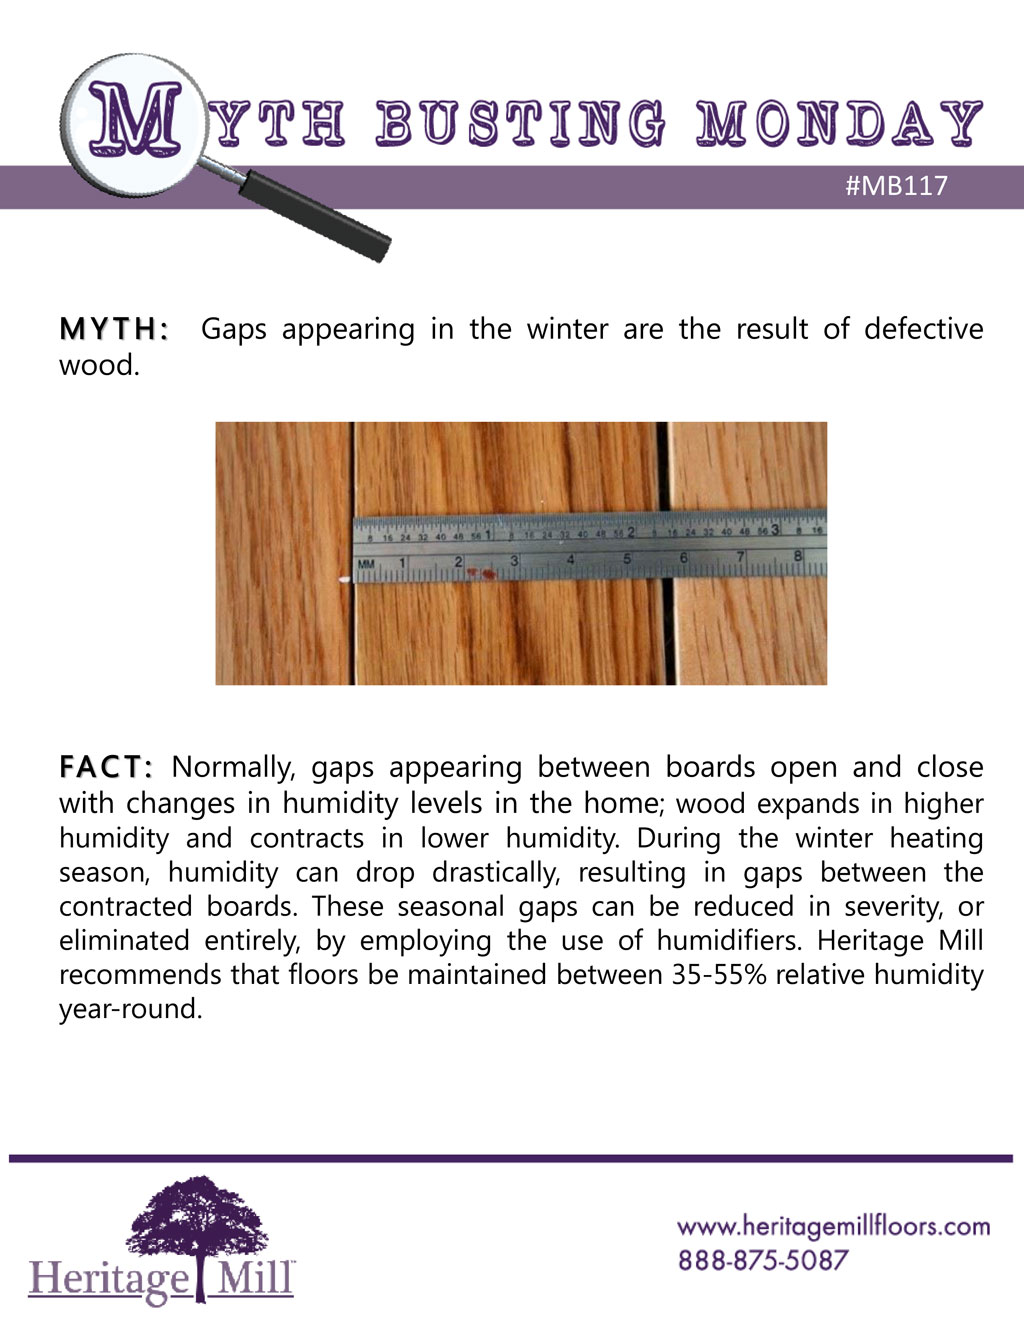 myth winter gaps